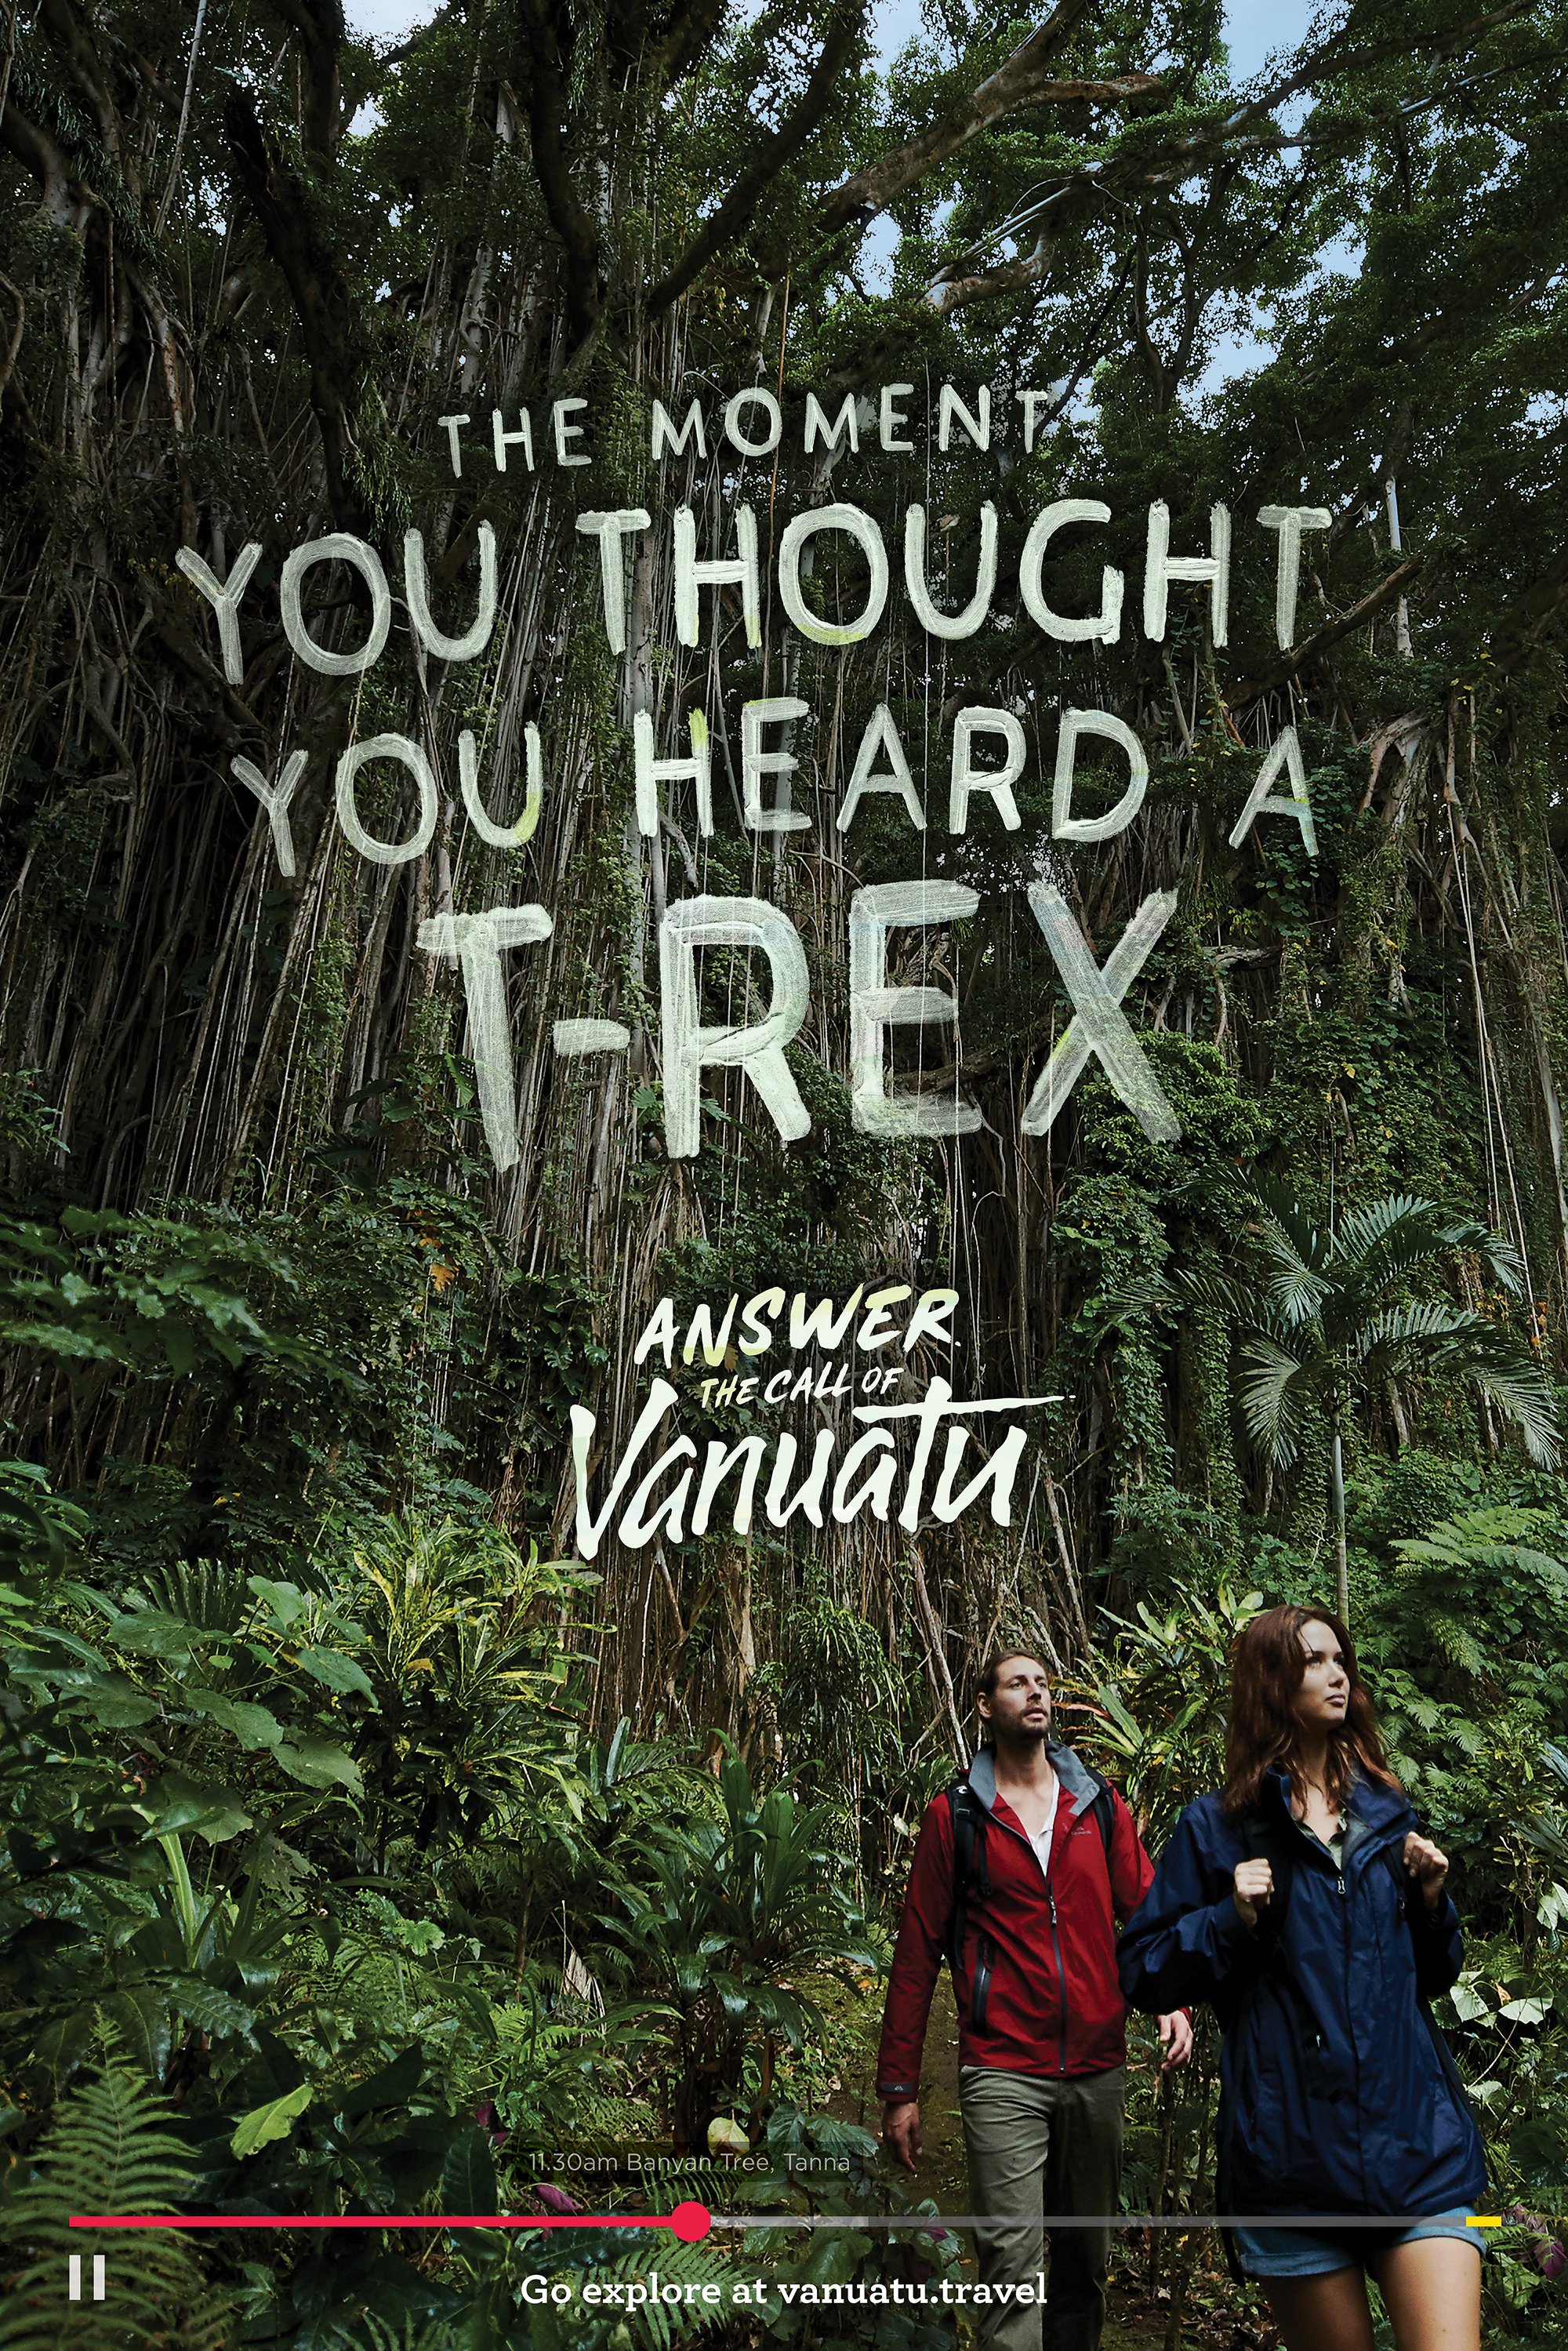 Travellers asked to leave the everyday behind and answer the call of Vanuatu in new ad via Engine